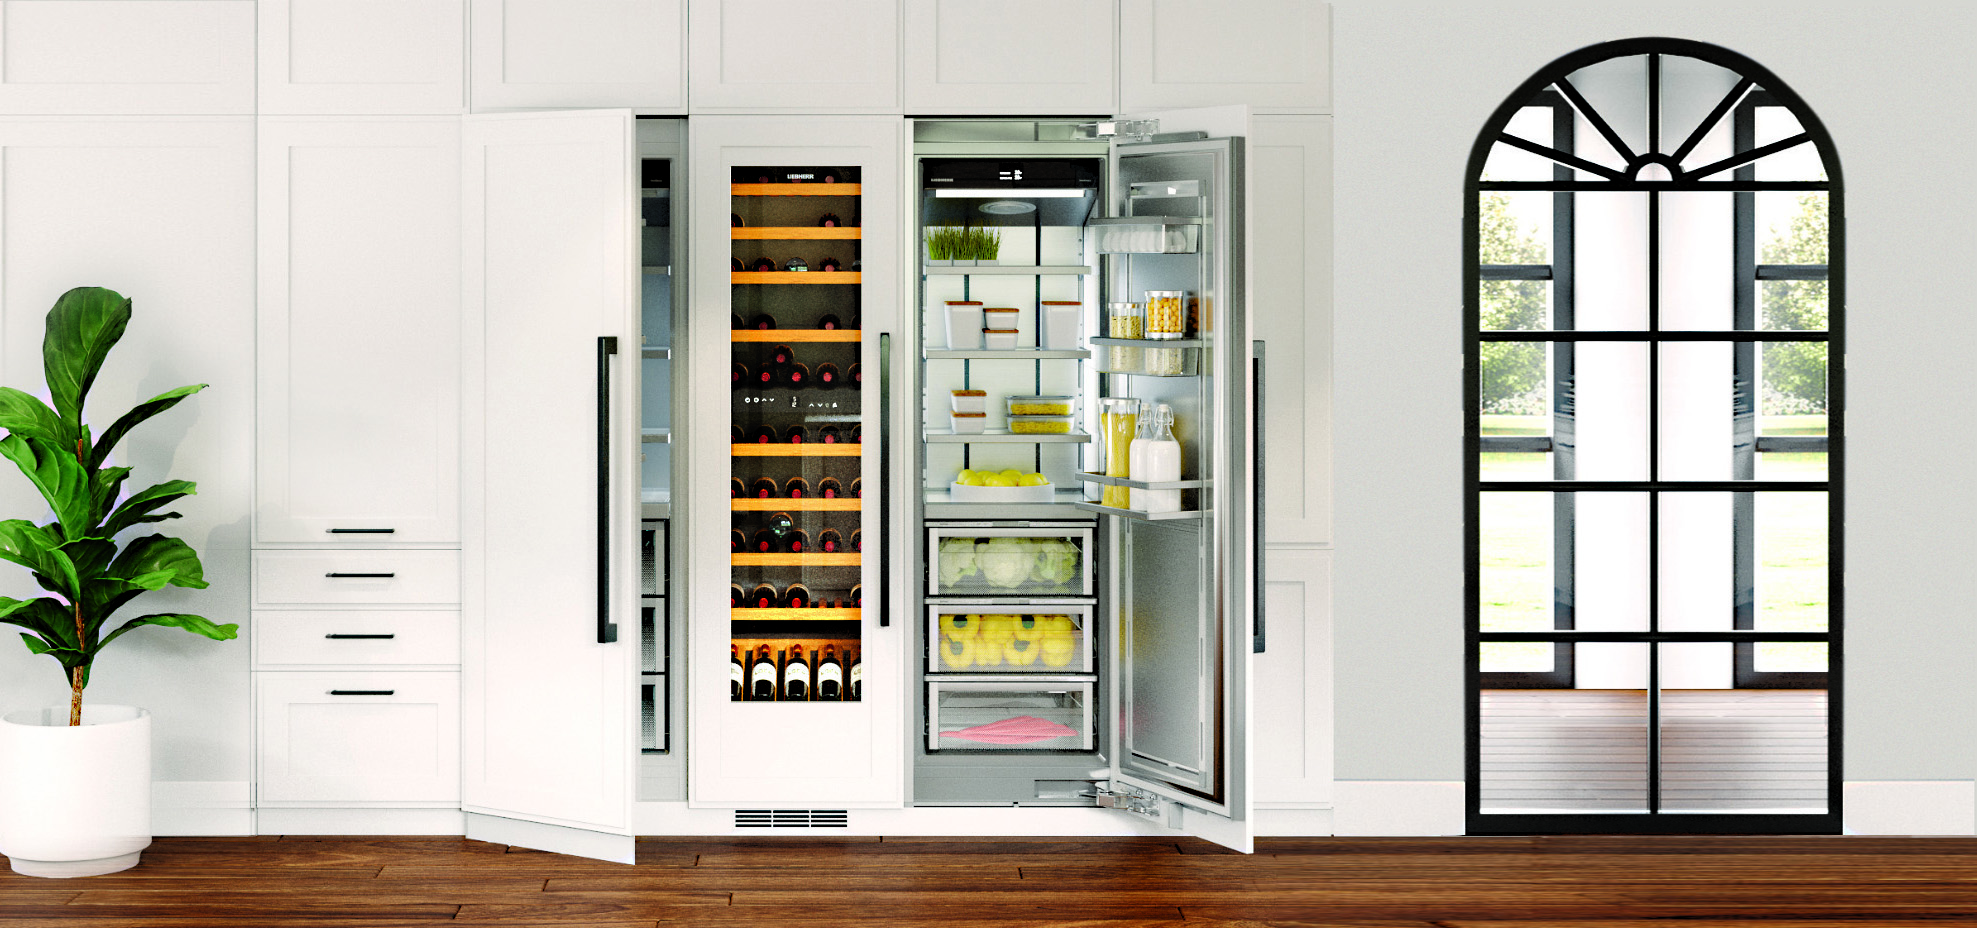 Luxe fridge clean-out tips